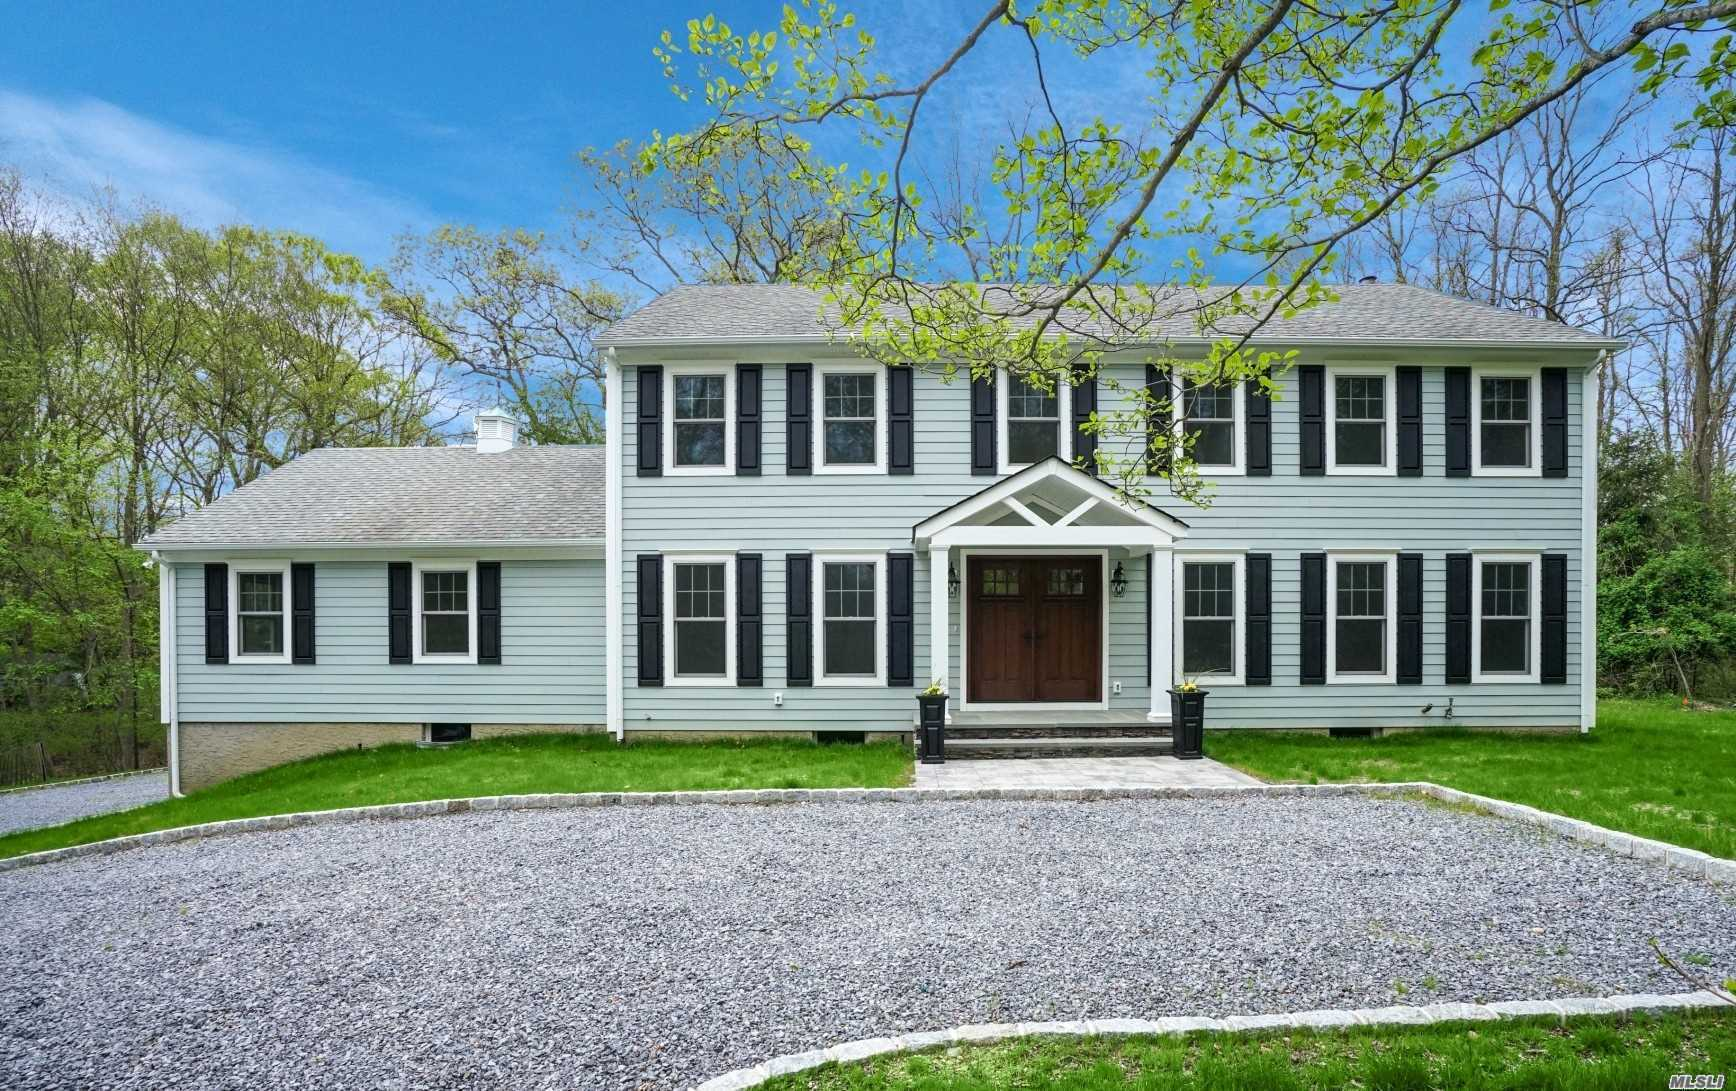 Better Than New Meticulously Renovated In 2018 W/ Superior Hi End Custom Quality, This Diamond 5Br 3 Full Bath Colonial Is Set In A Quiet Culdesac! Stunning New Gourmet Granite White Eik W/ Viking Appliances & Center Island Open To Fam Rm, Beautiful New Hardwood Flooring, New Staircase, New Marvin Windows, Designer Colors, New Hardie Board Exterior Siding, New Paver Patio, Hi Hats, Brand New Baths, Upd Elec, New Cac, New Belgium Block Lined Driveway, 2 Private Serene Acres, Orig House Built 1978